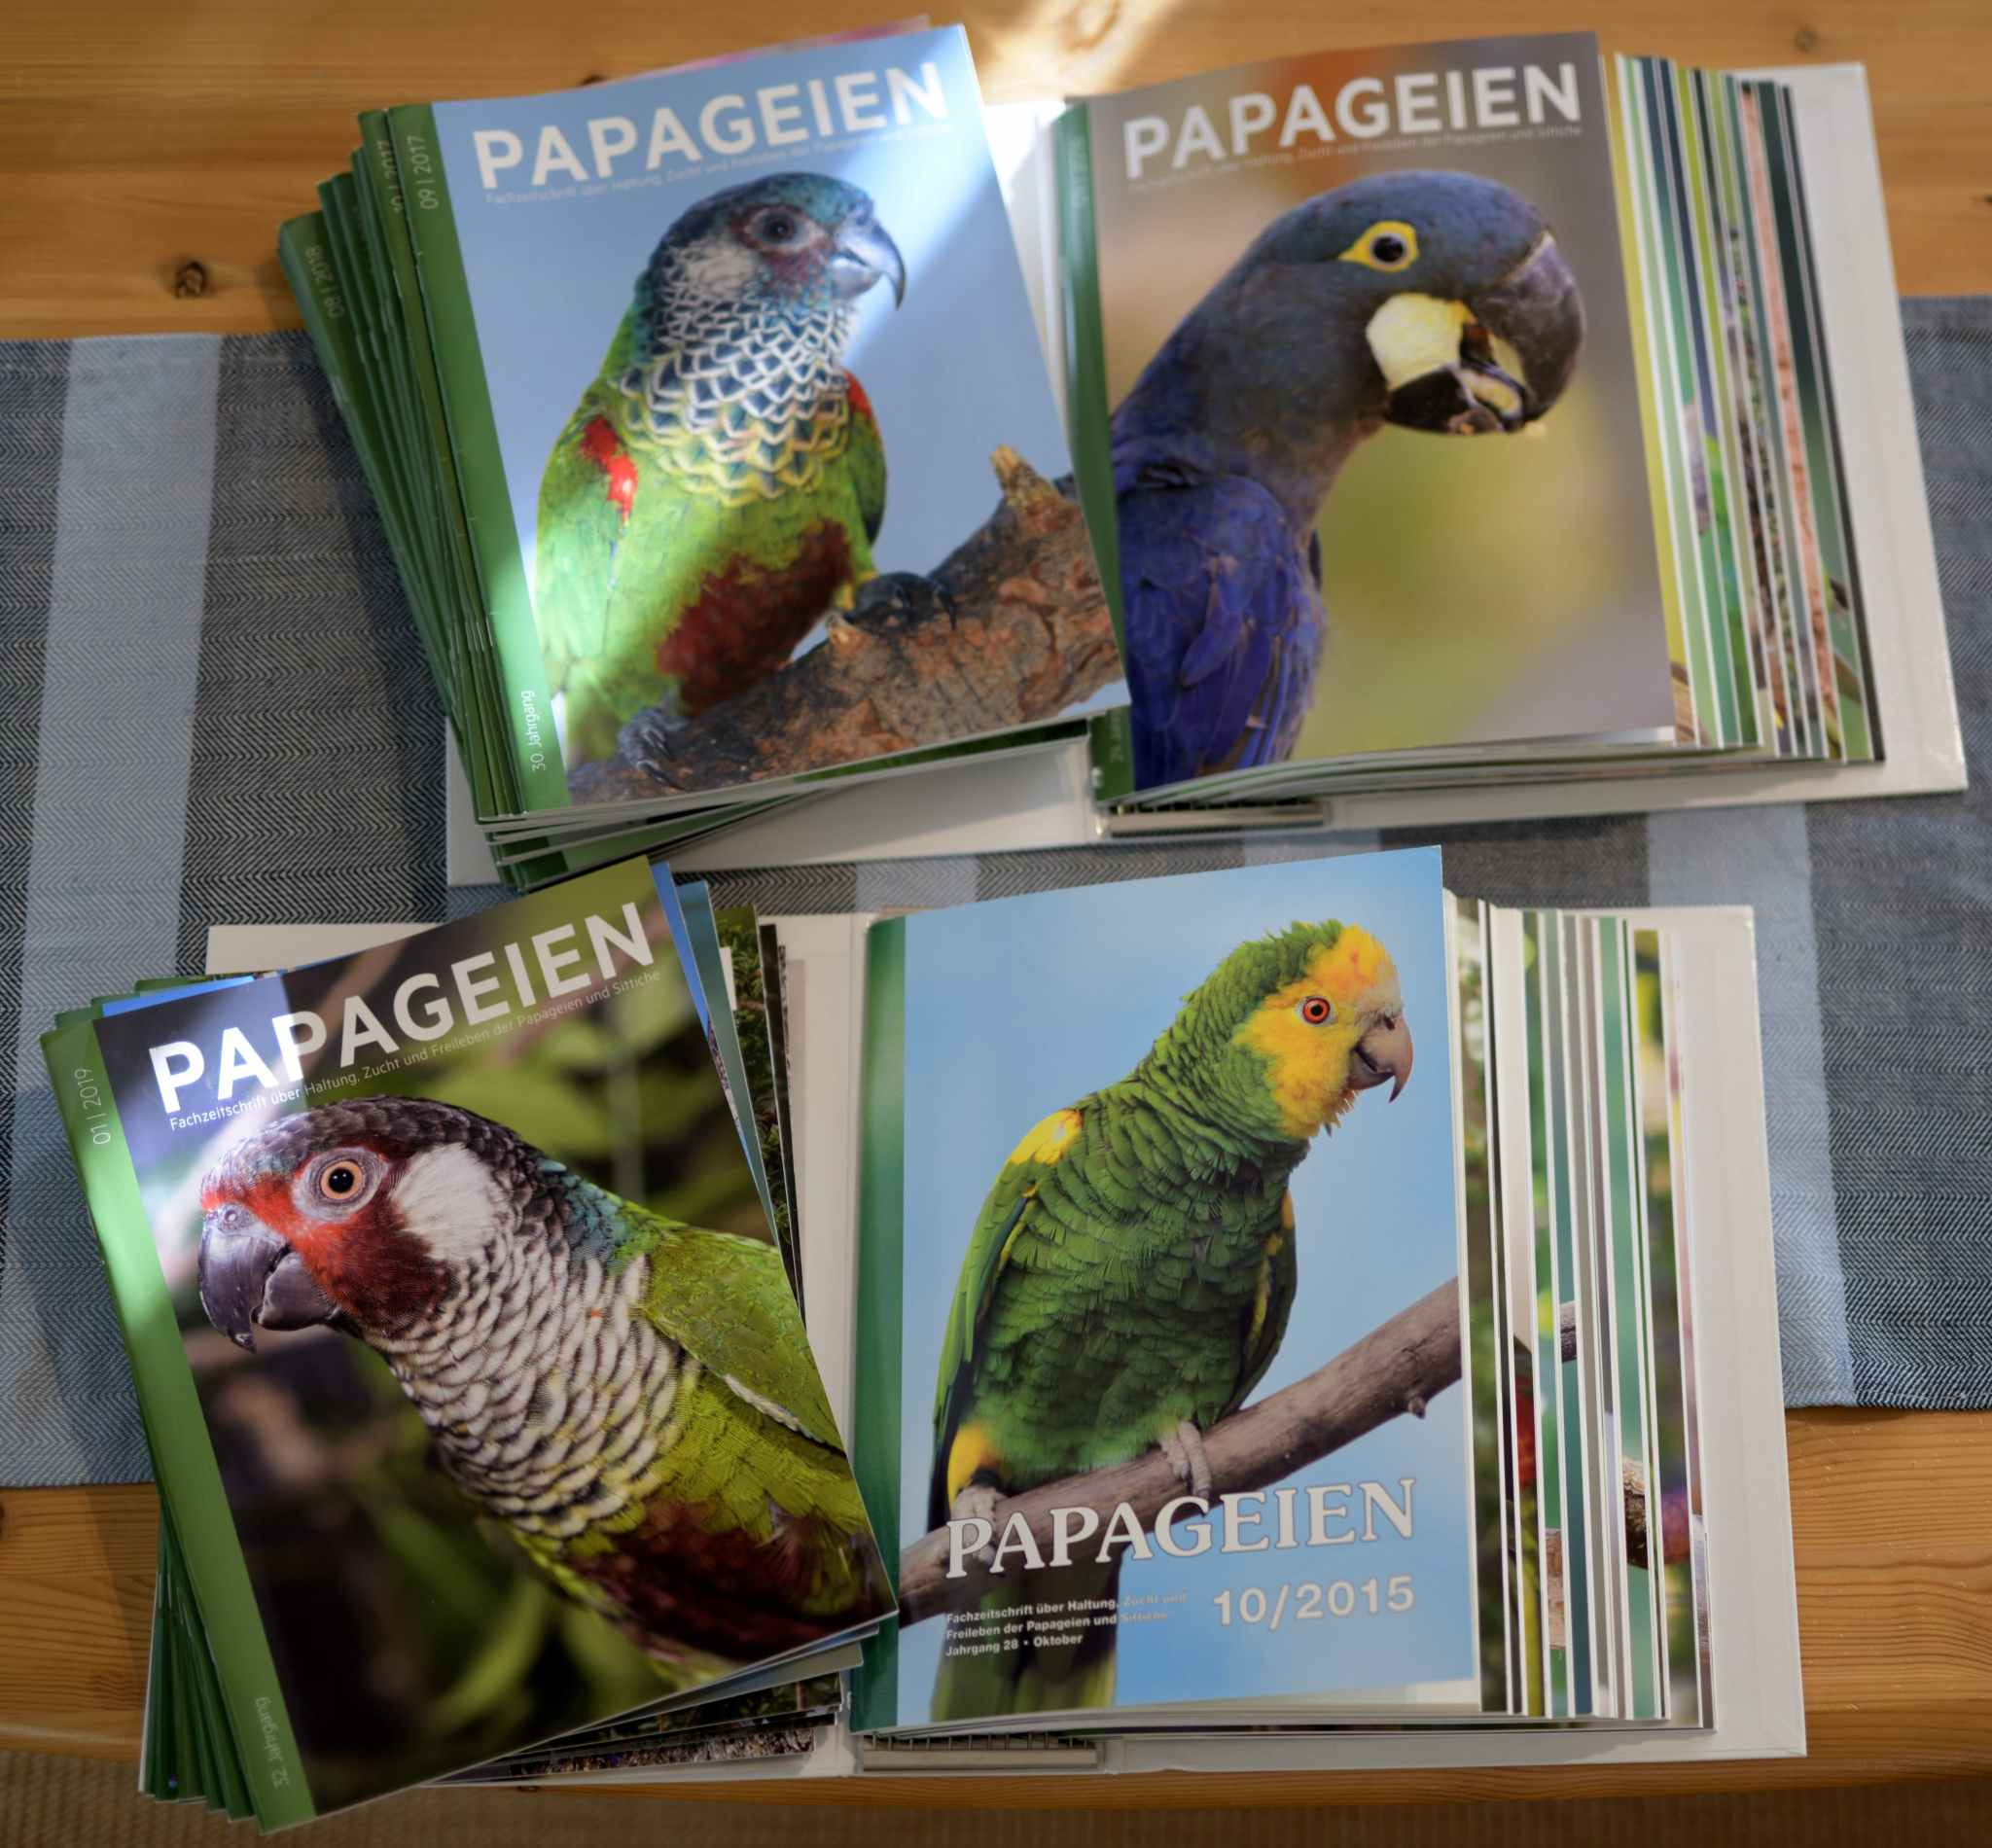 Papageien 9/2015-8/2019